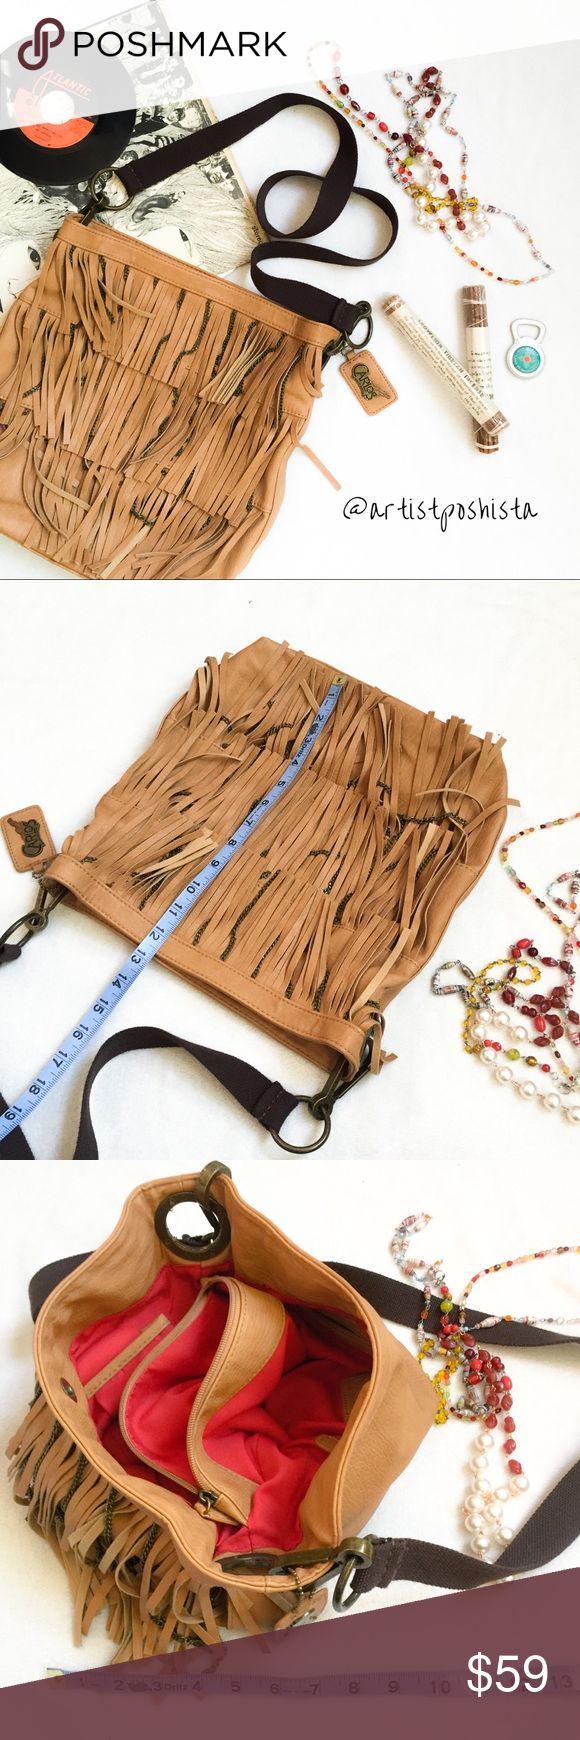 NWOT Rare Carlos Boho Fringe & Chain Xbody Bag Rare!!! Brand New w/ out Tags Carlos by Carlos Santana. Carmel/Tan color Vegan Leather Large Tour Style Bag w/ Boho Fringe & Chain detailing. No flaws, never used, completely pristine interior & exterior. Detachable crossbody or shoulder strap can be looped for a standard length purse strap or swapped out for a more personalized look. Stunningly gorgeous bag! Functional & well designed w/ inside pockets galore. Carlos Santana Bags Crossbody Bags